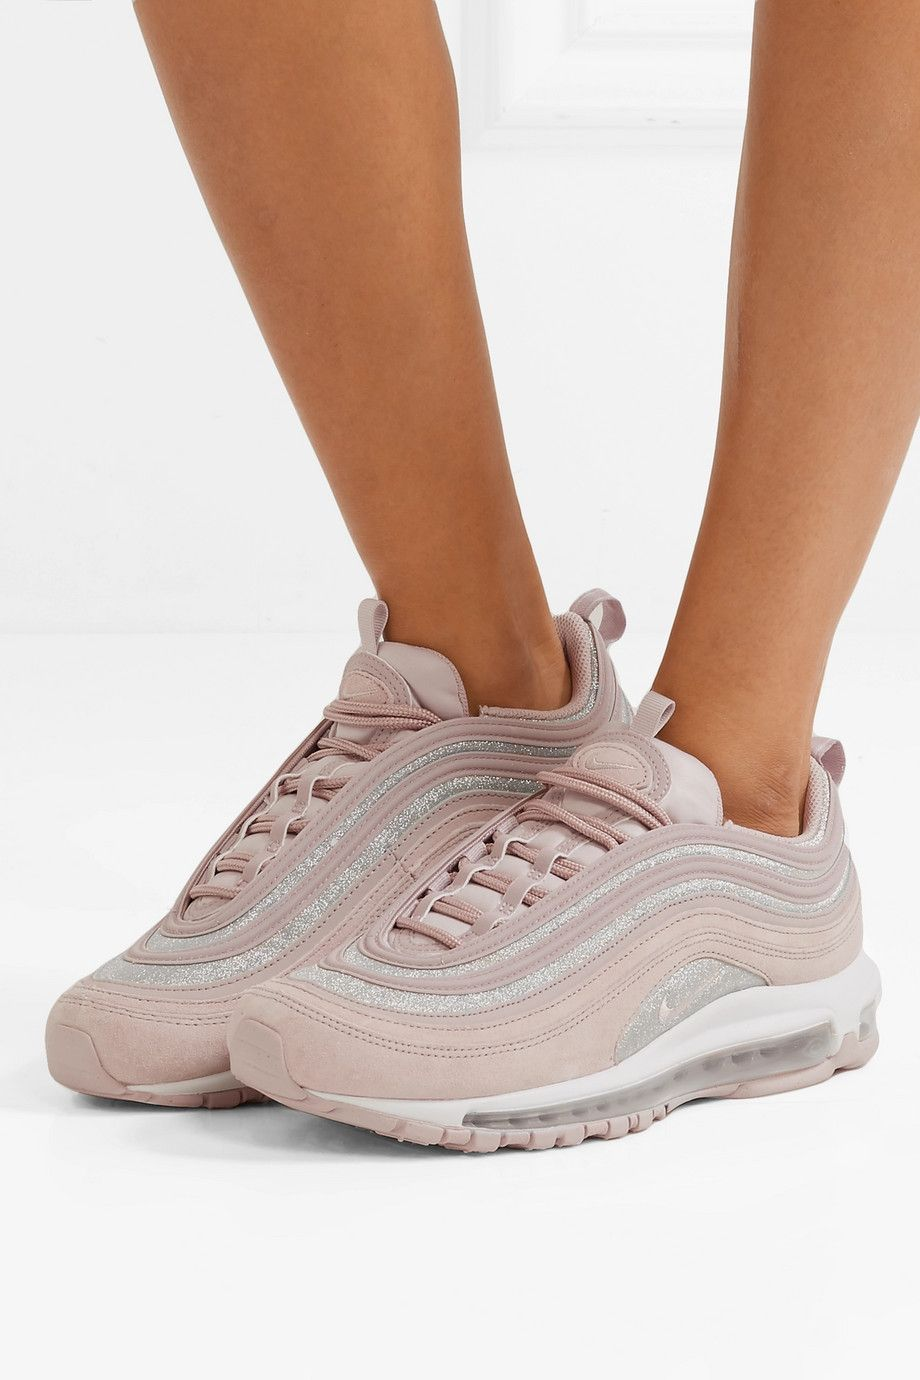 competitive price 8ca87 0a084 Nike   Air Max 97 glittered leather and suede sneakers   NET-A-PORTER.COM